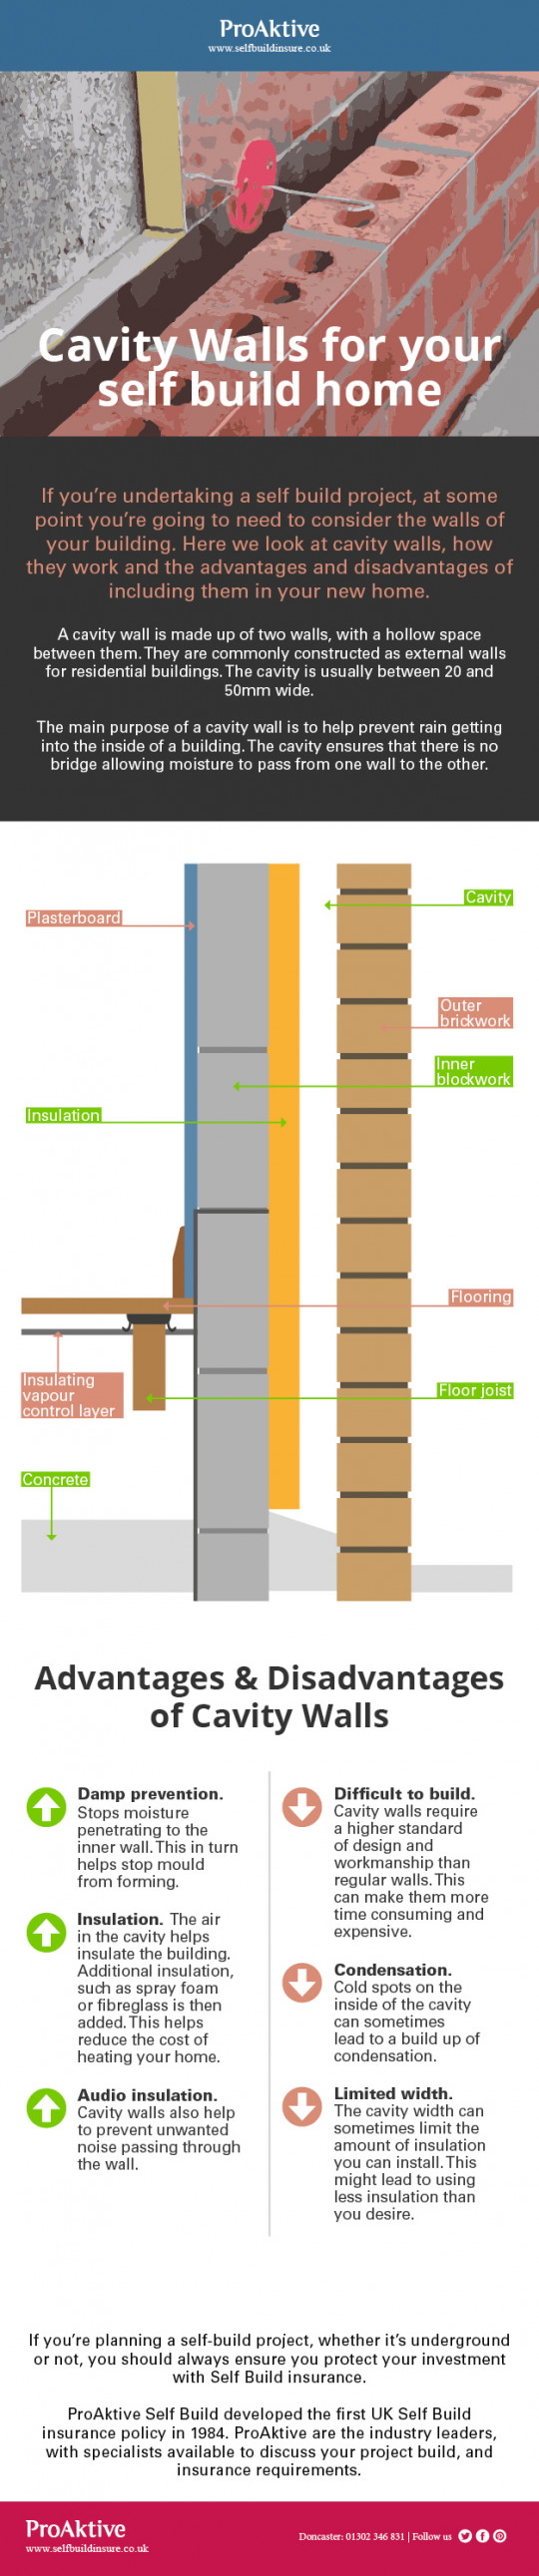 Cavity Walls for your Self Build Home